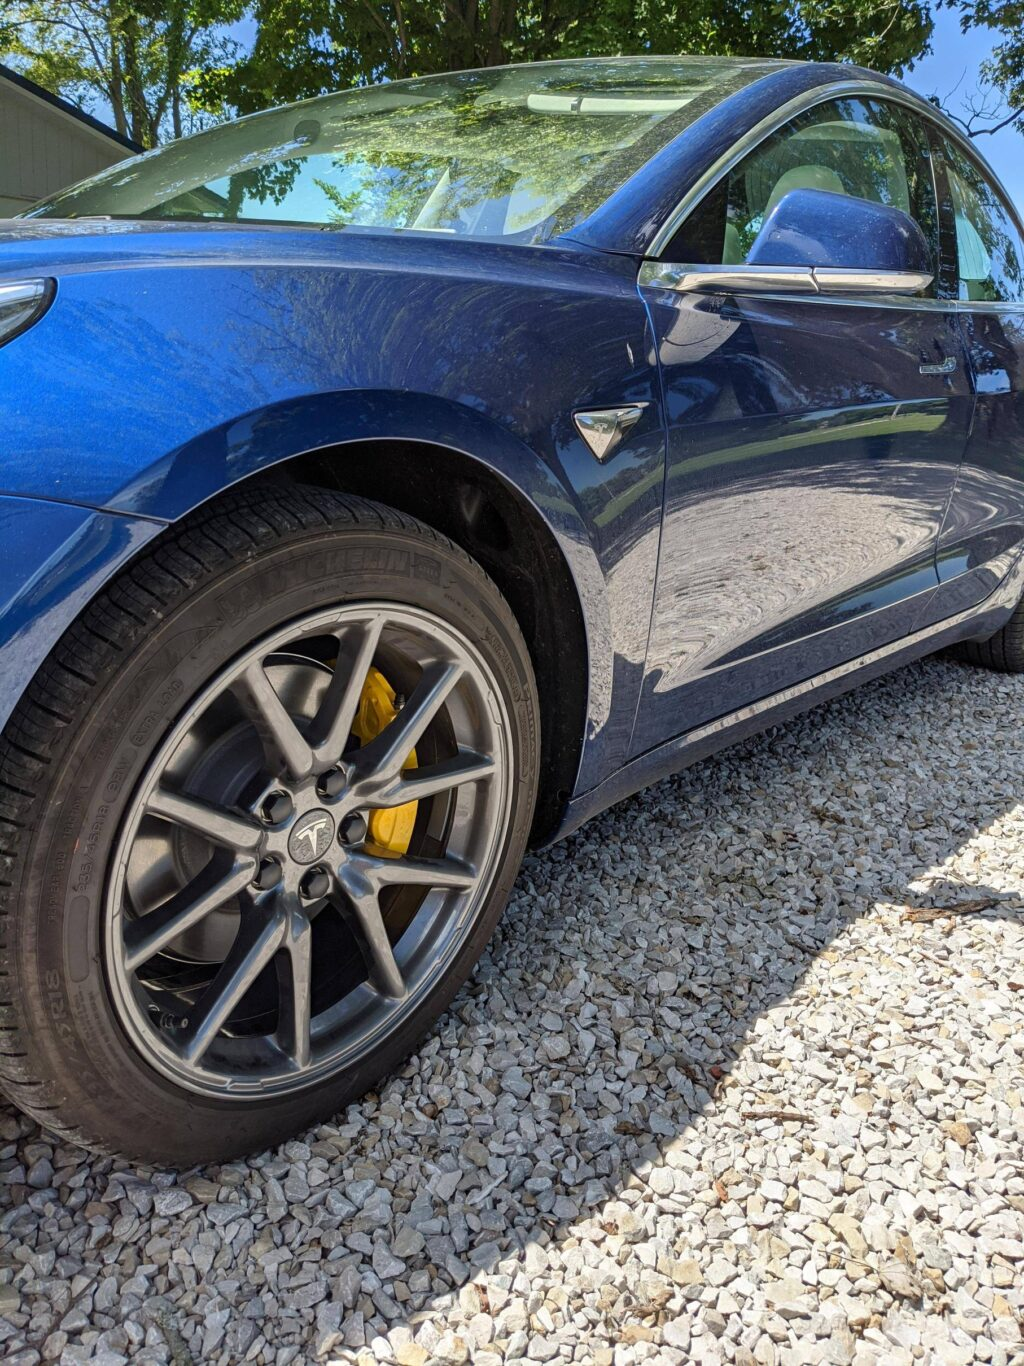 Model 3 with Aero wheels with yellow painted calipers ...